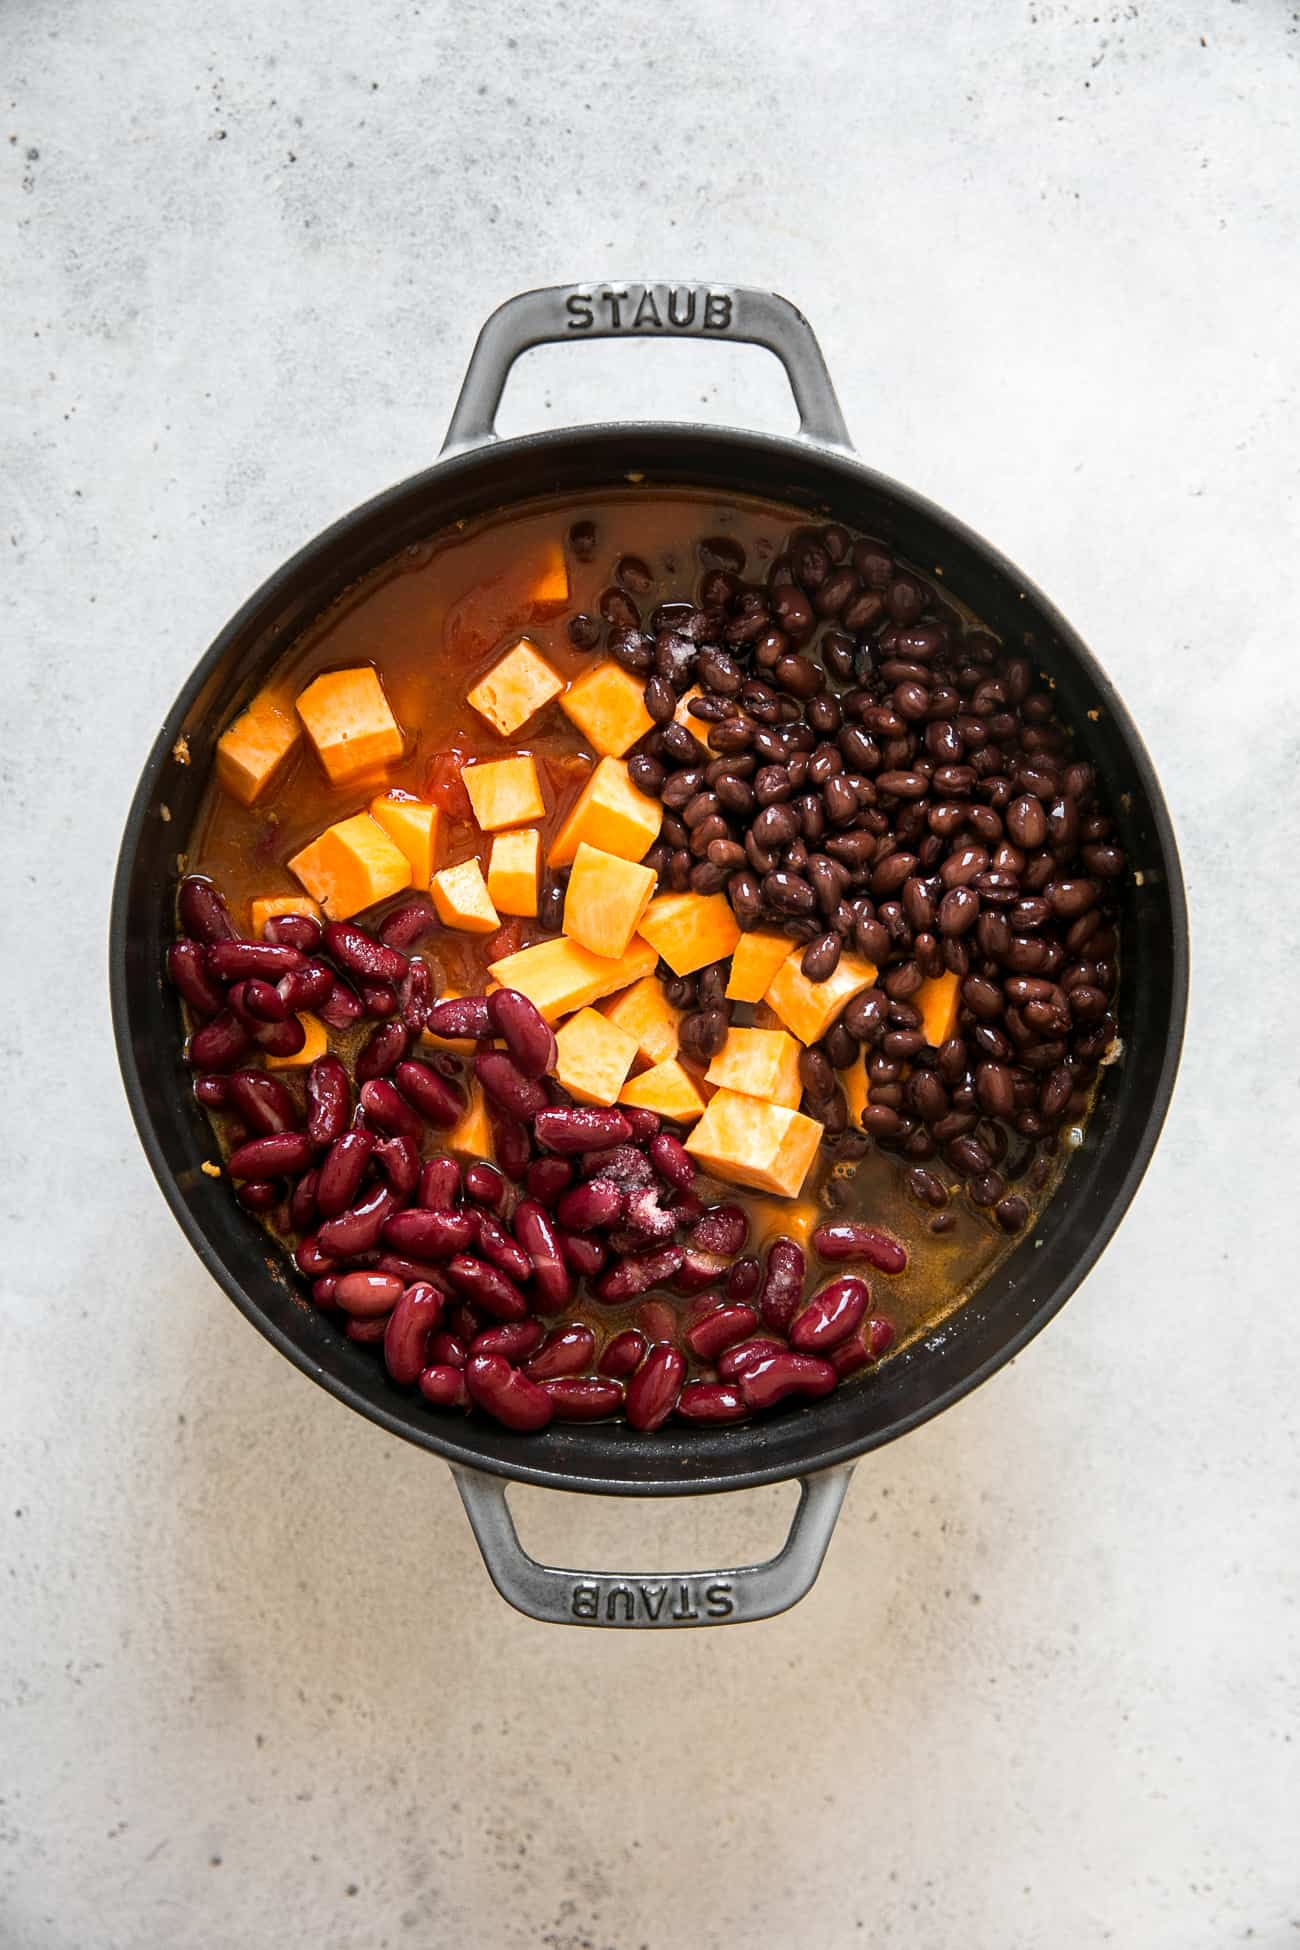 staub pot with kidney beans, black beans, and sweet potatoes in pot of uncooked turkey chili